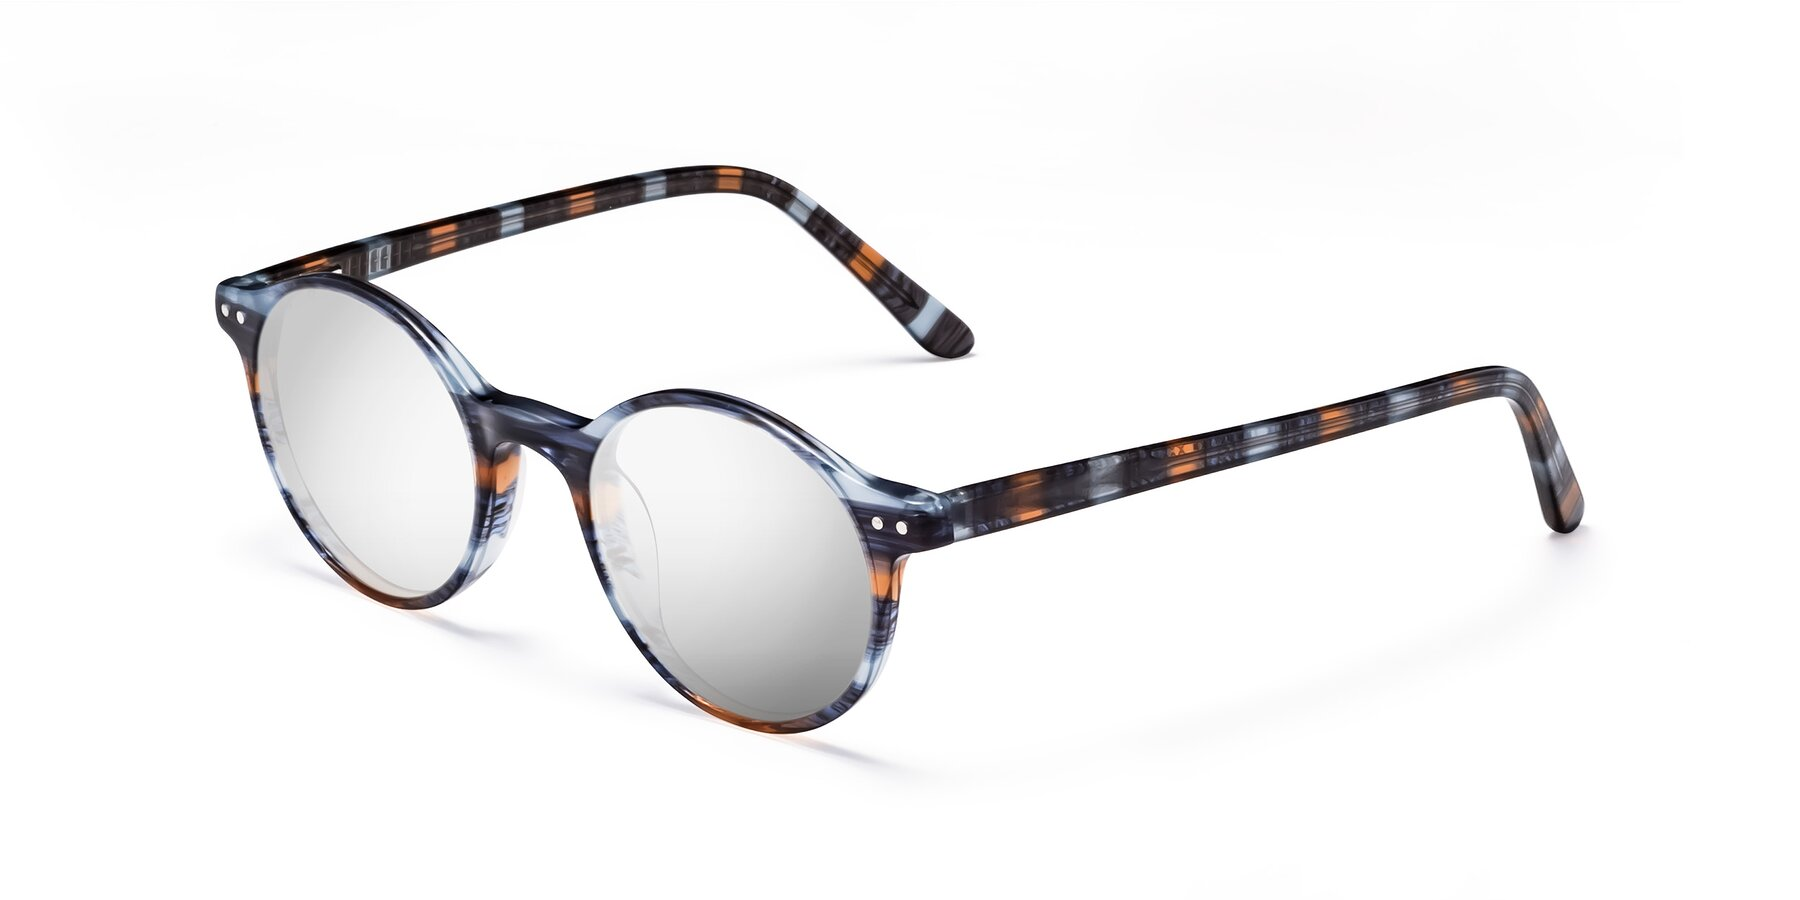 Angle of 17519 in Stripe Blue Brown with Silver Mirrored Lenses